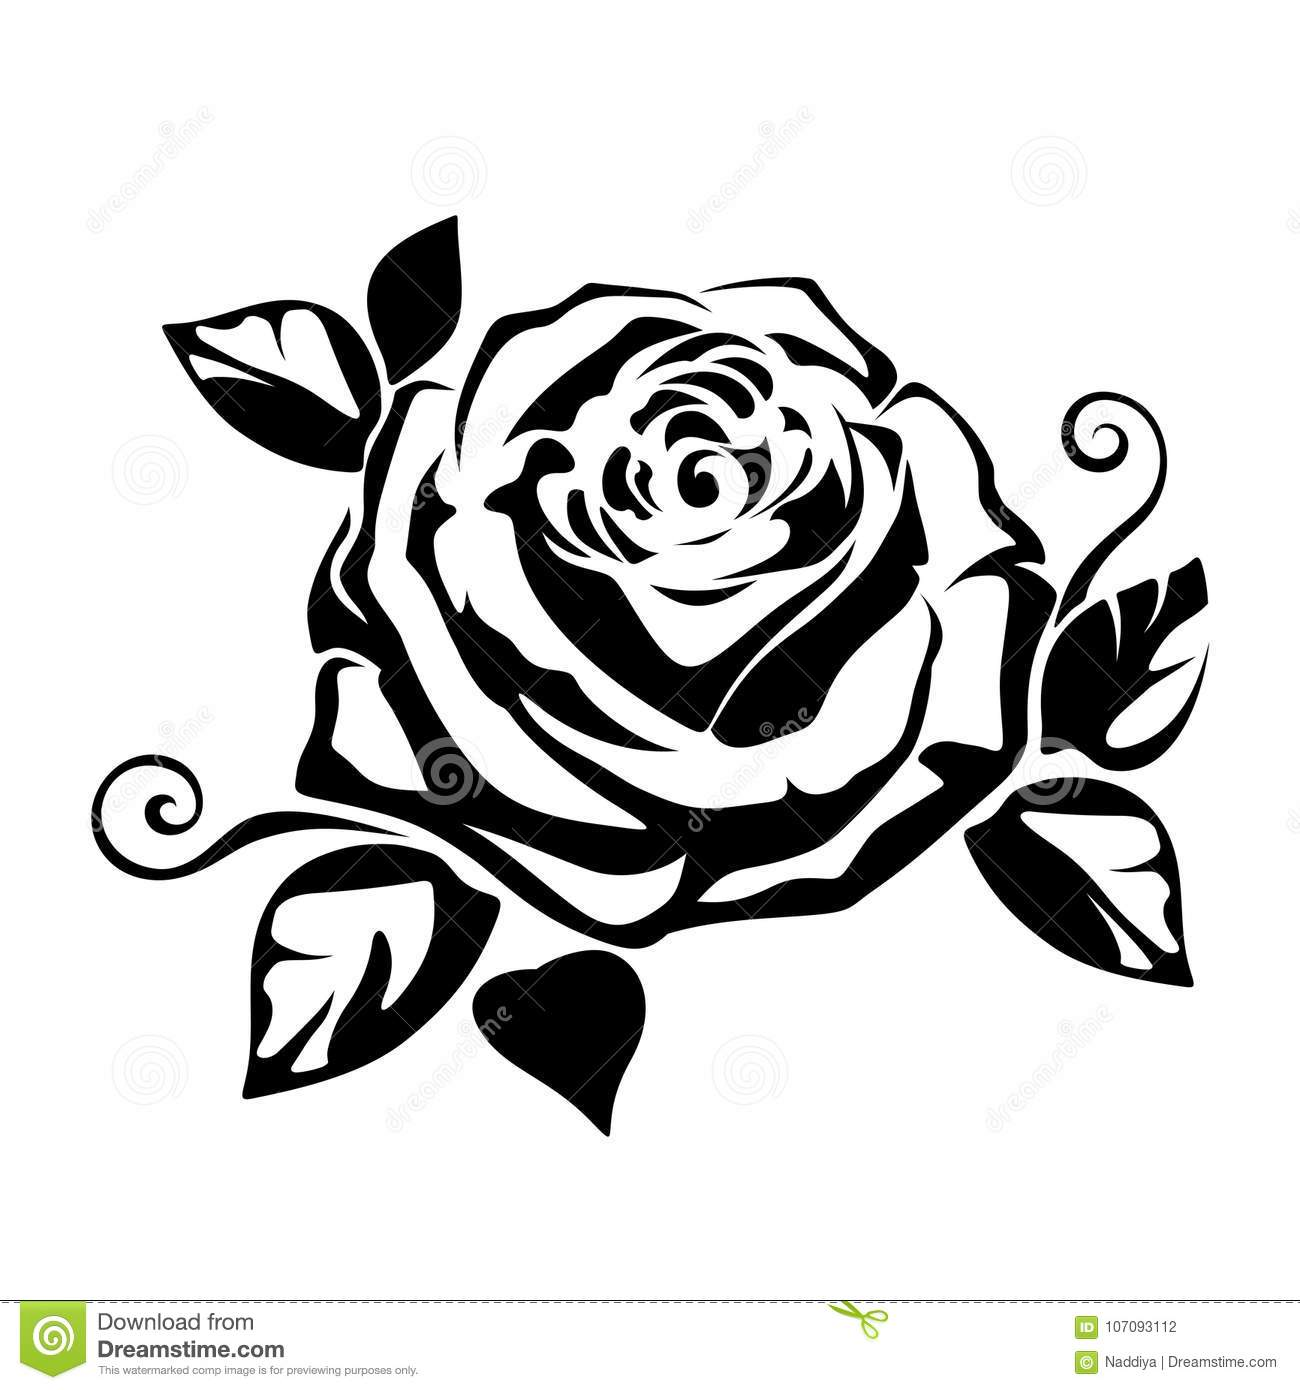 Black Silhouette Of A Rose Vector Illustration Stock